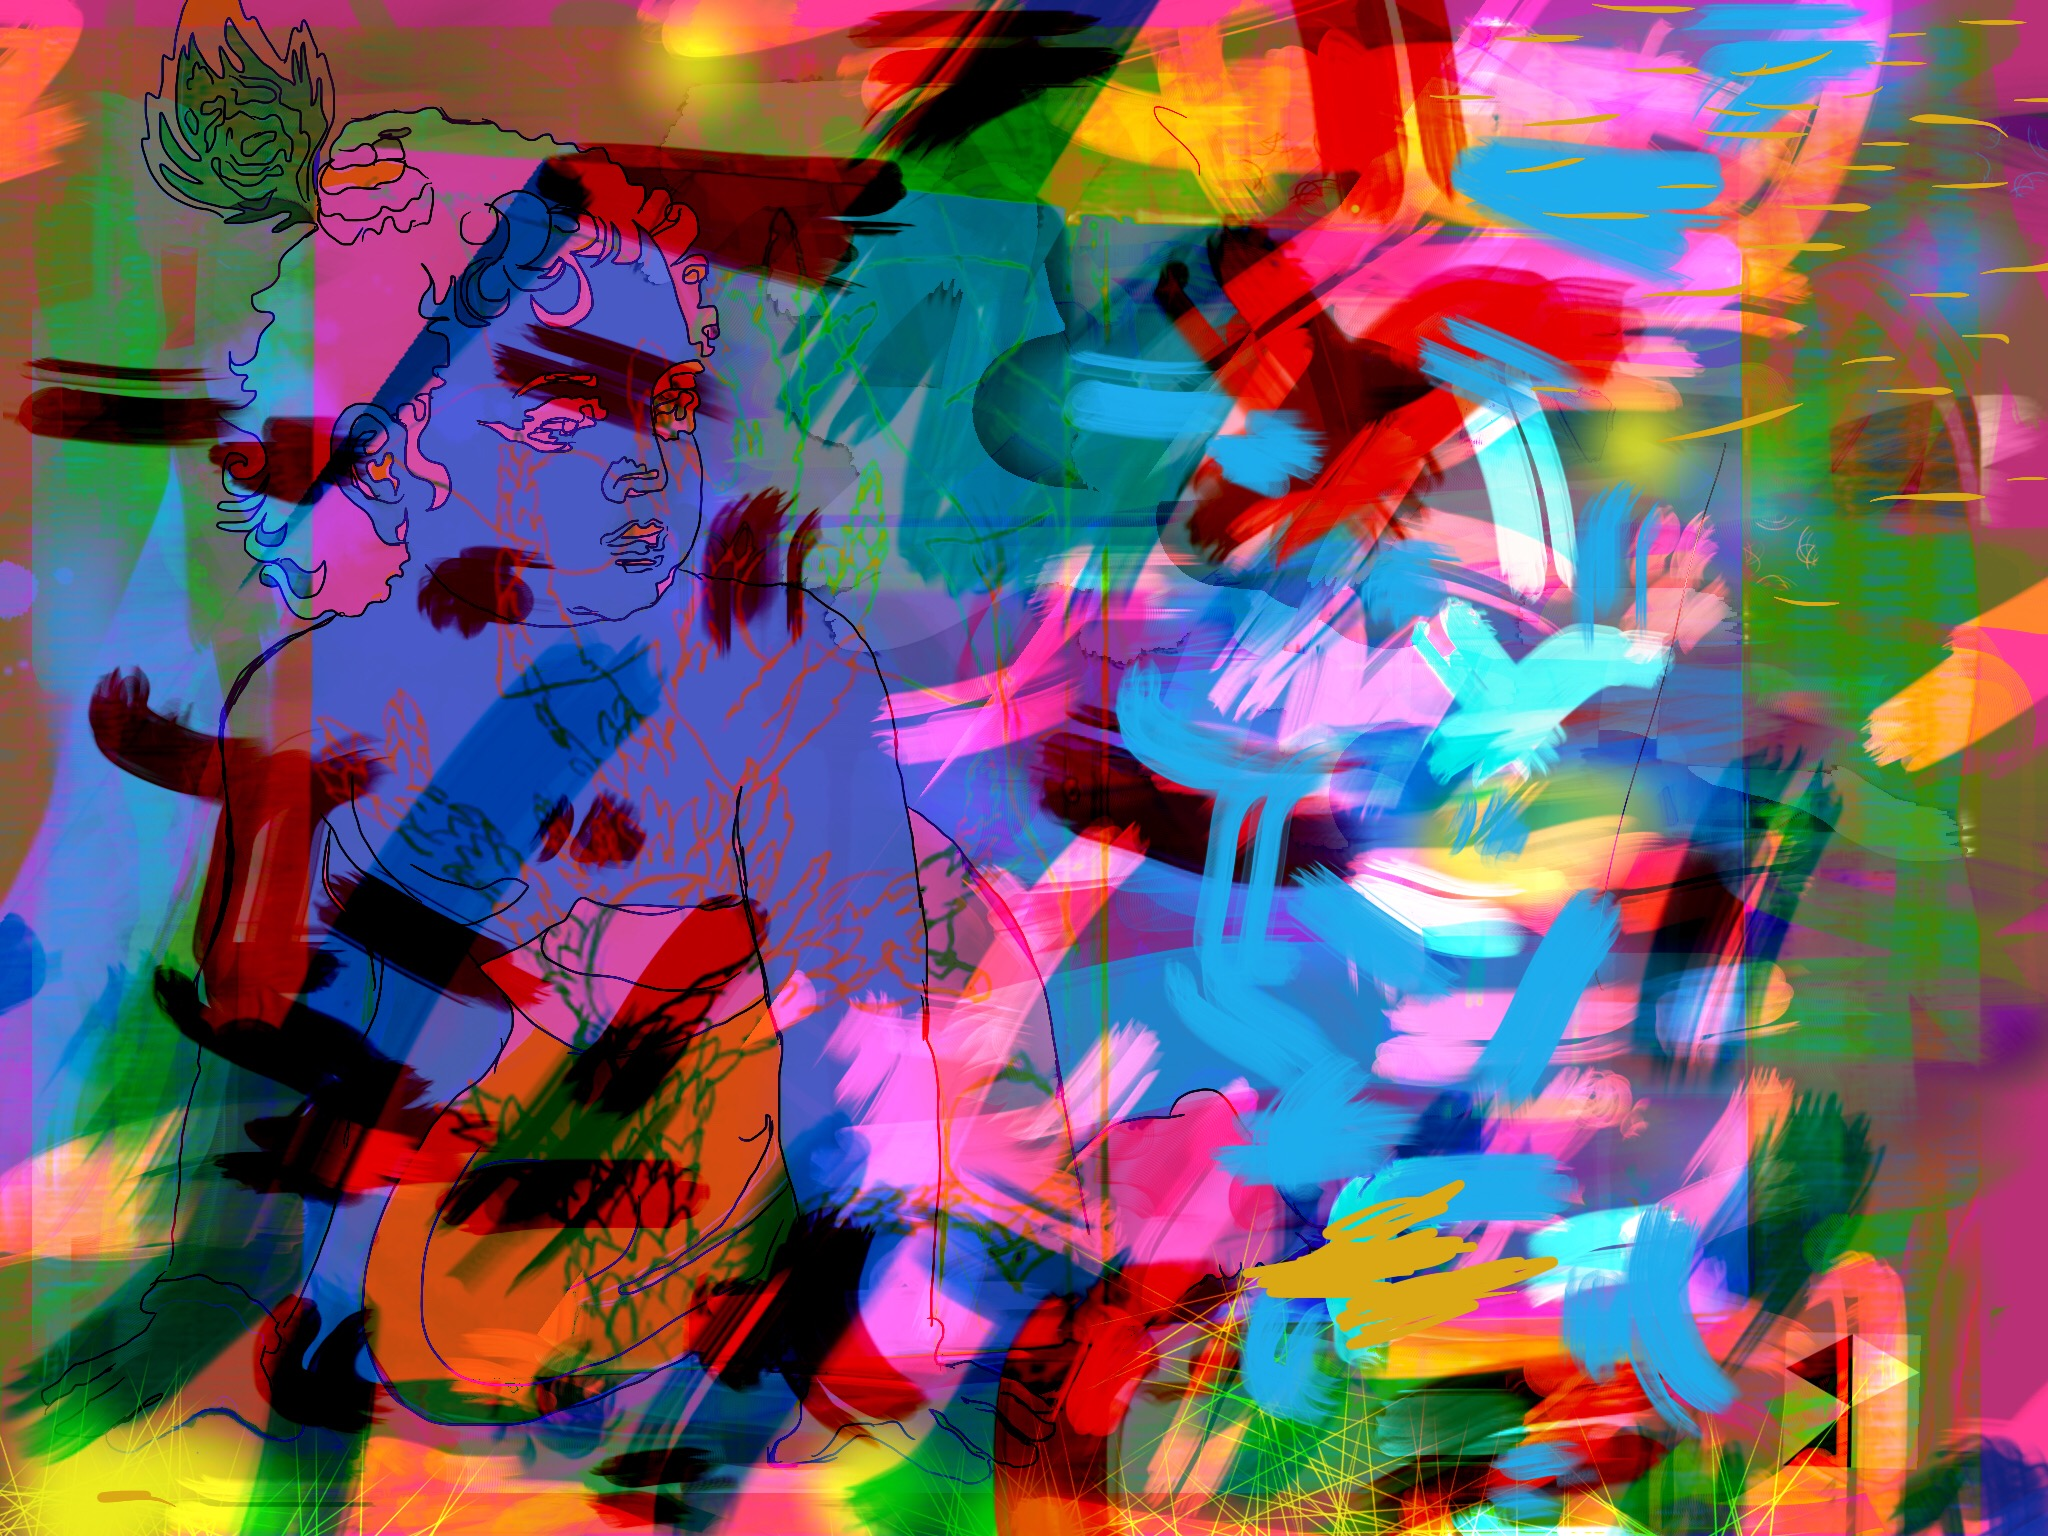 """Baby   Electronics Painting, Sketchbook Scan, iPad, Procreate, Pencil 53, Photoshop. © 2016 dimensions variable to 48"""" x 60"""" giclee limited edition prints available contact the artist"""